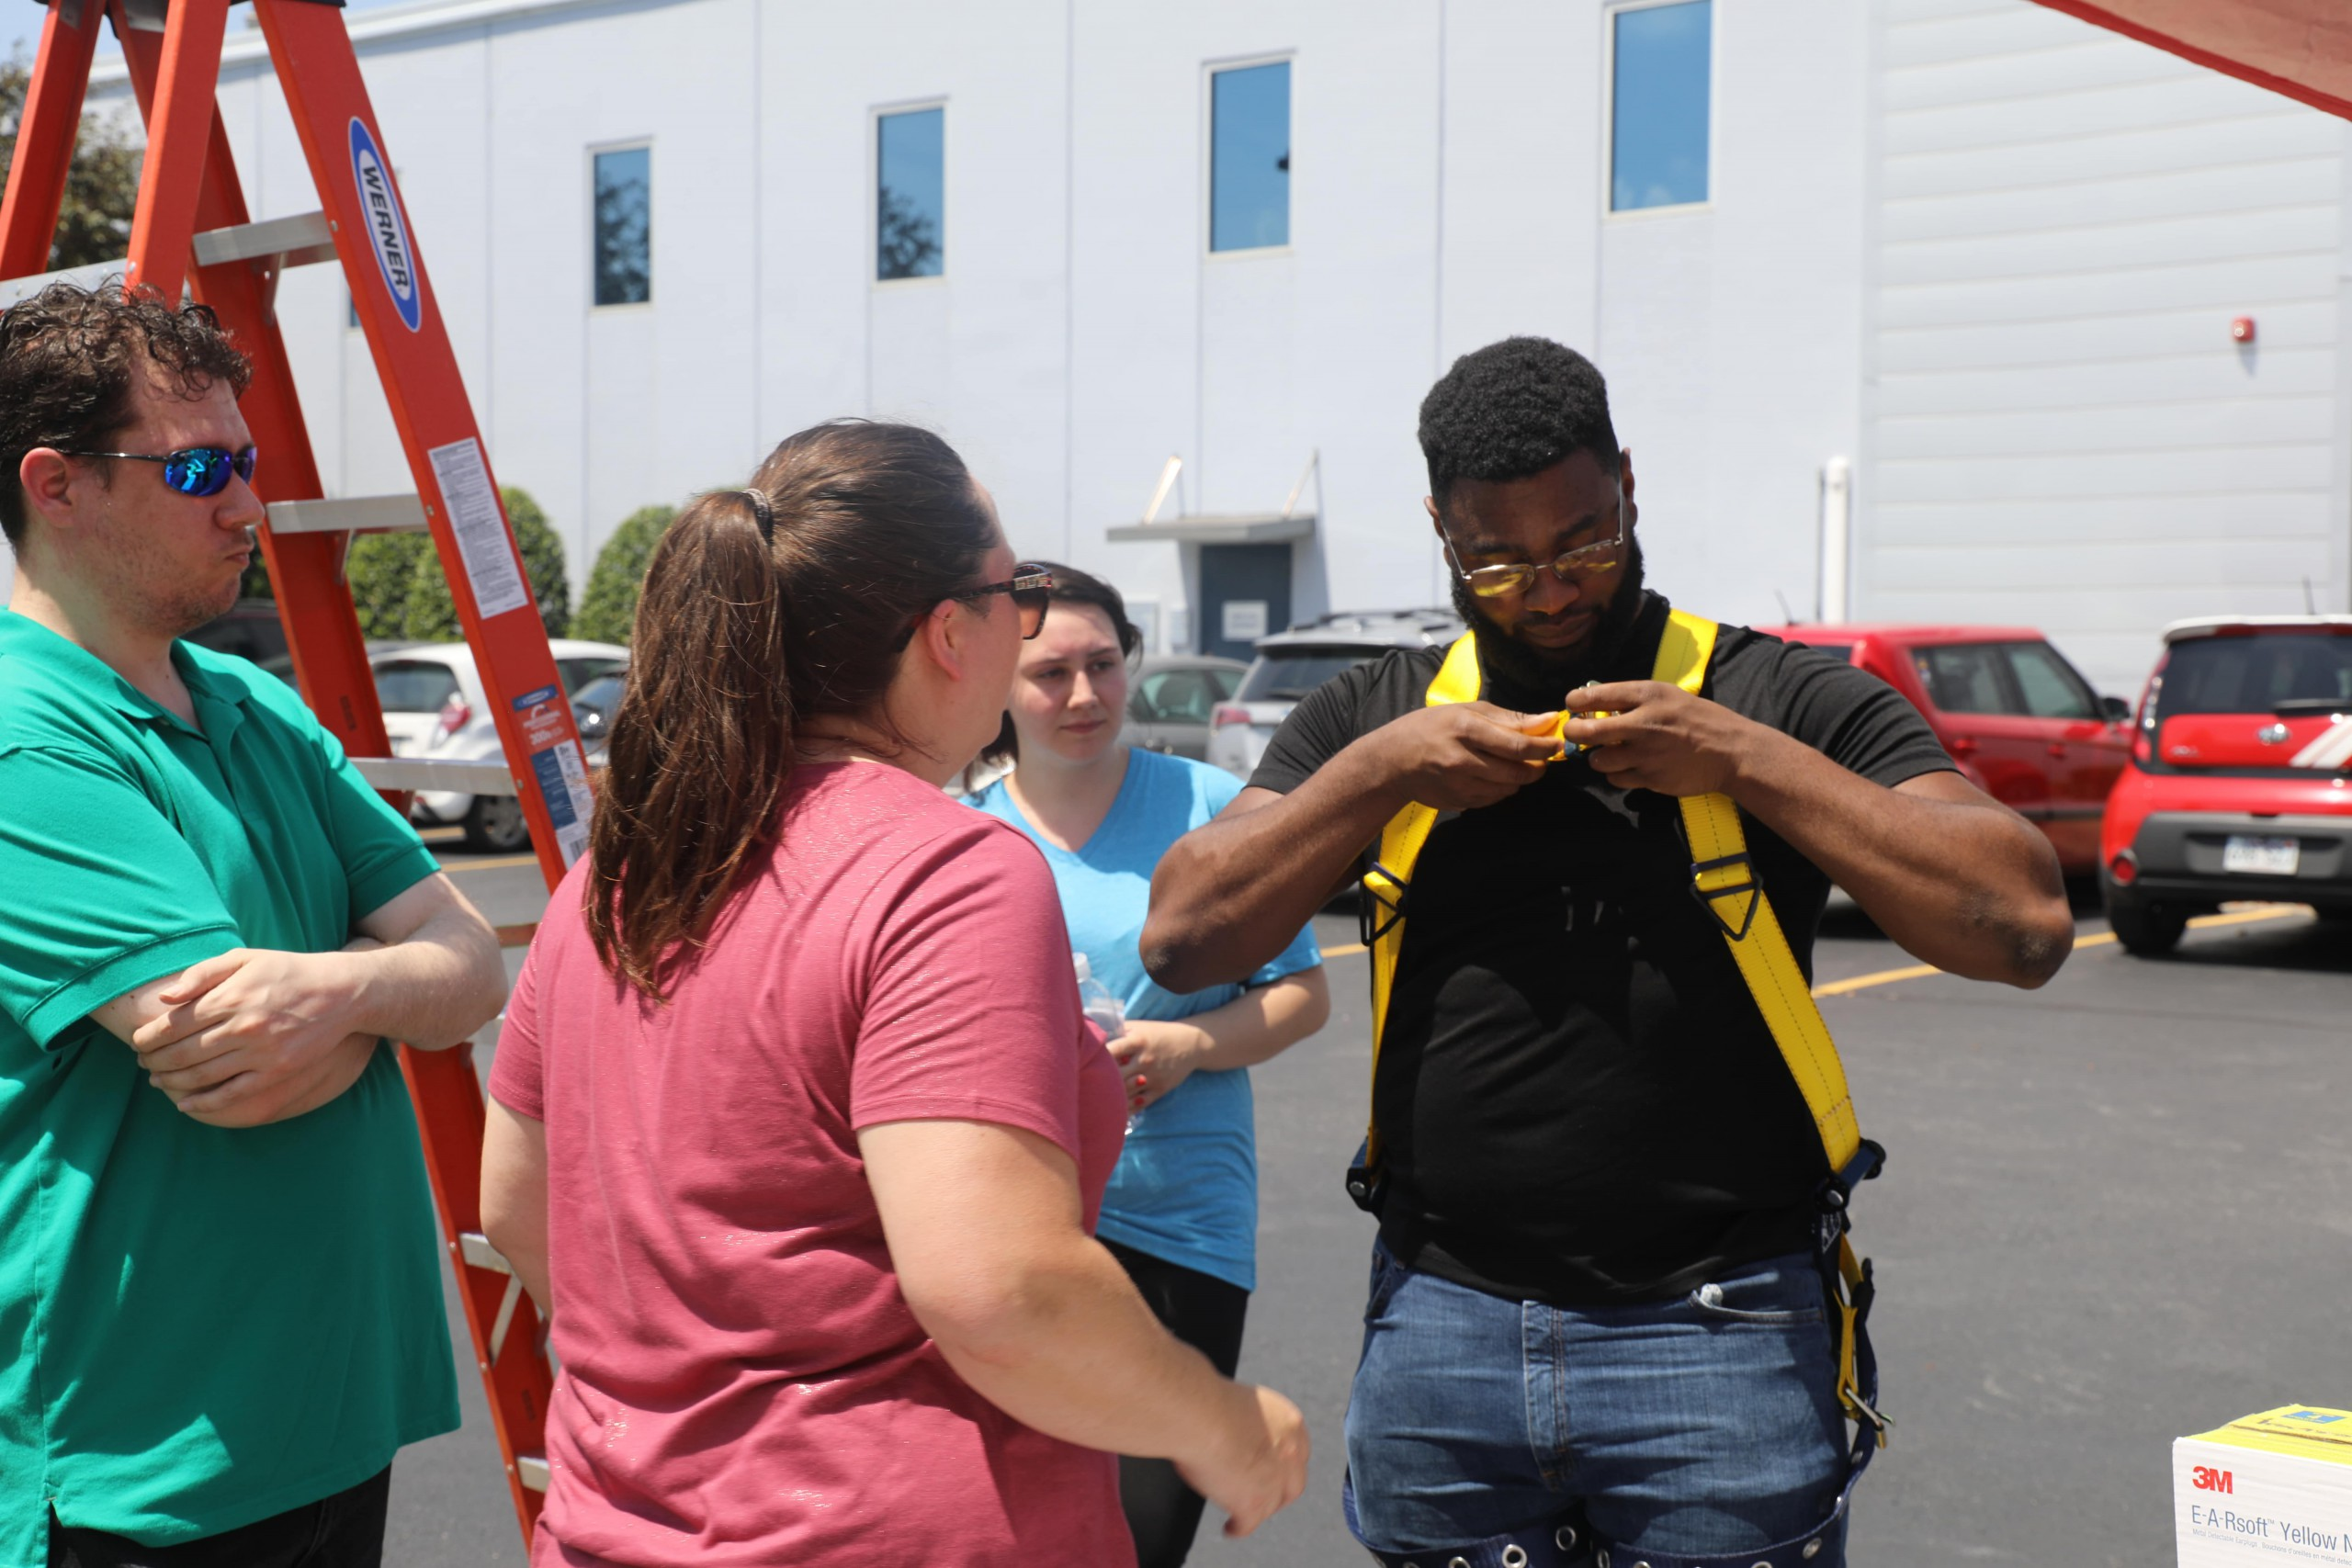 Safety Harness Training at the Wachter Safety Fair